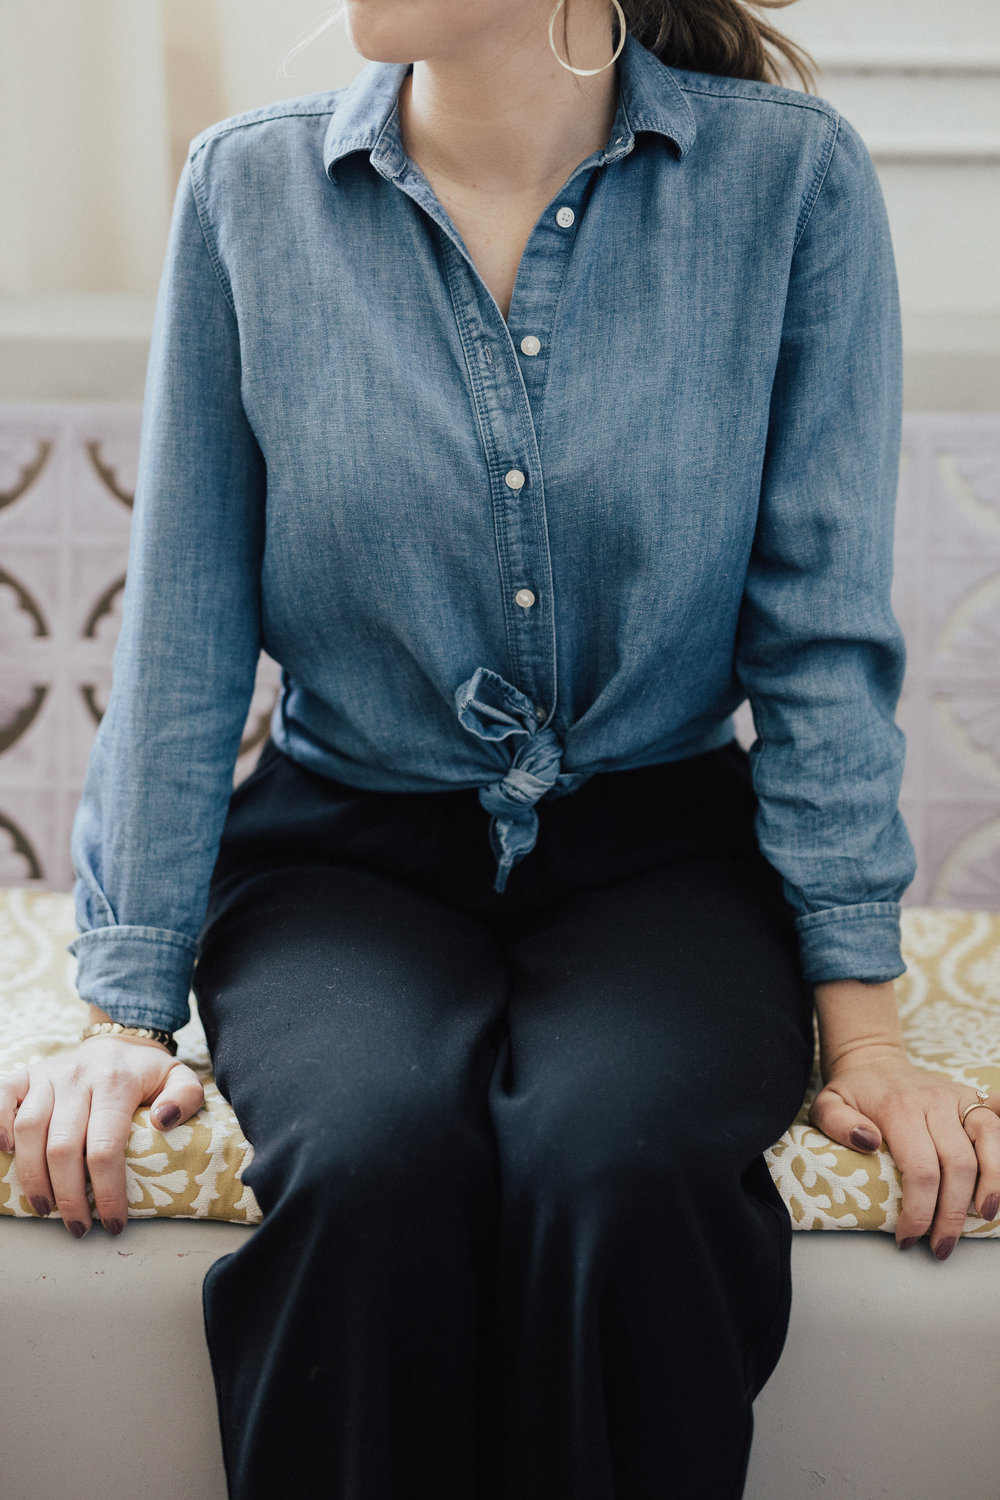 Another most loved item of the year is this old Loft Chambray button down. I've had this shirt for year's and continue to wear this because of the weight, color, fit and versatility it can provide.